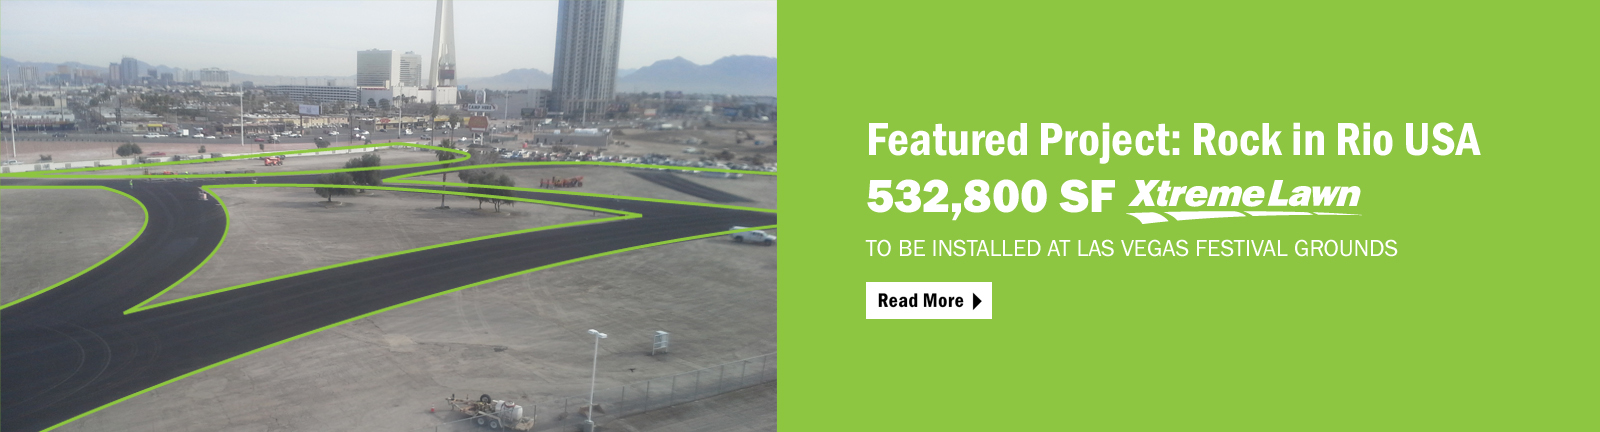 Rock in Rio in Las Vegas will feature Act Global's Xtreme Lawn synthetic turf